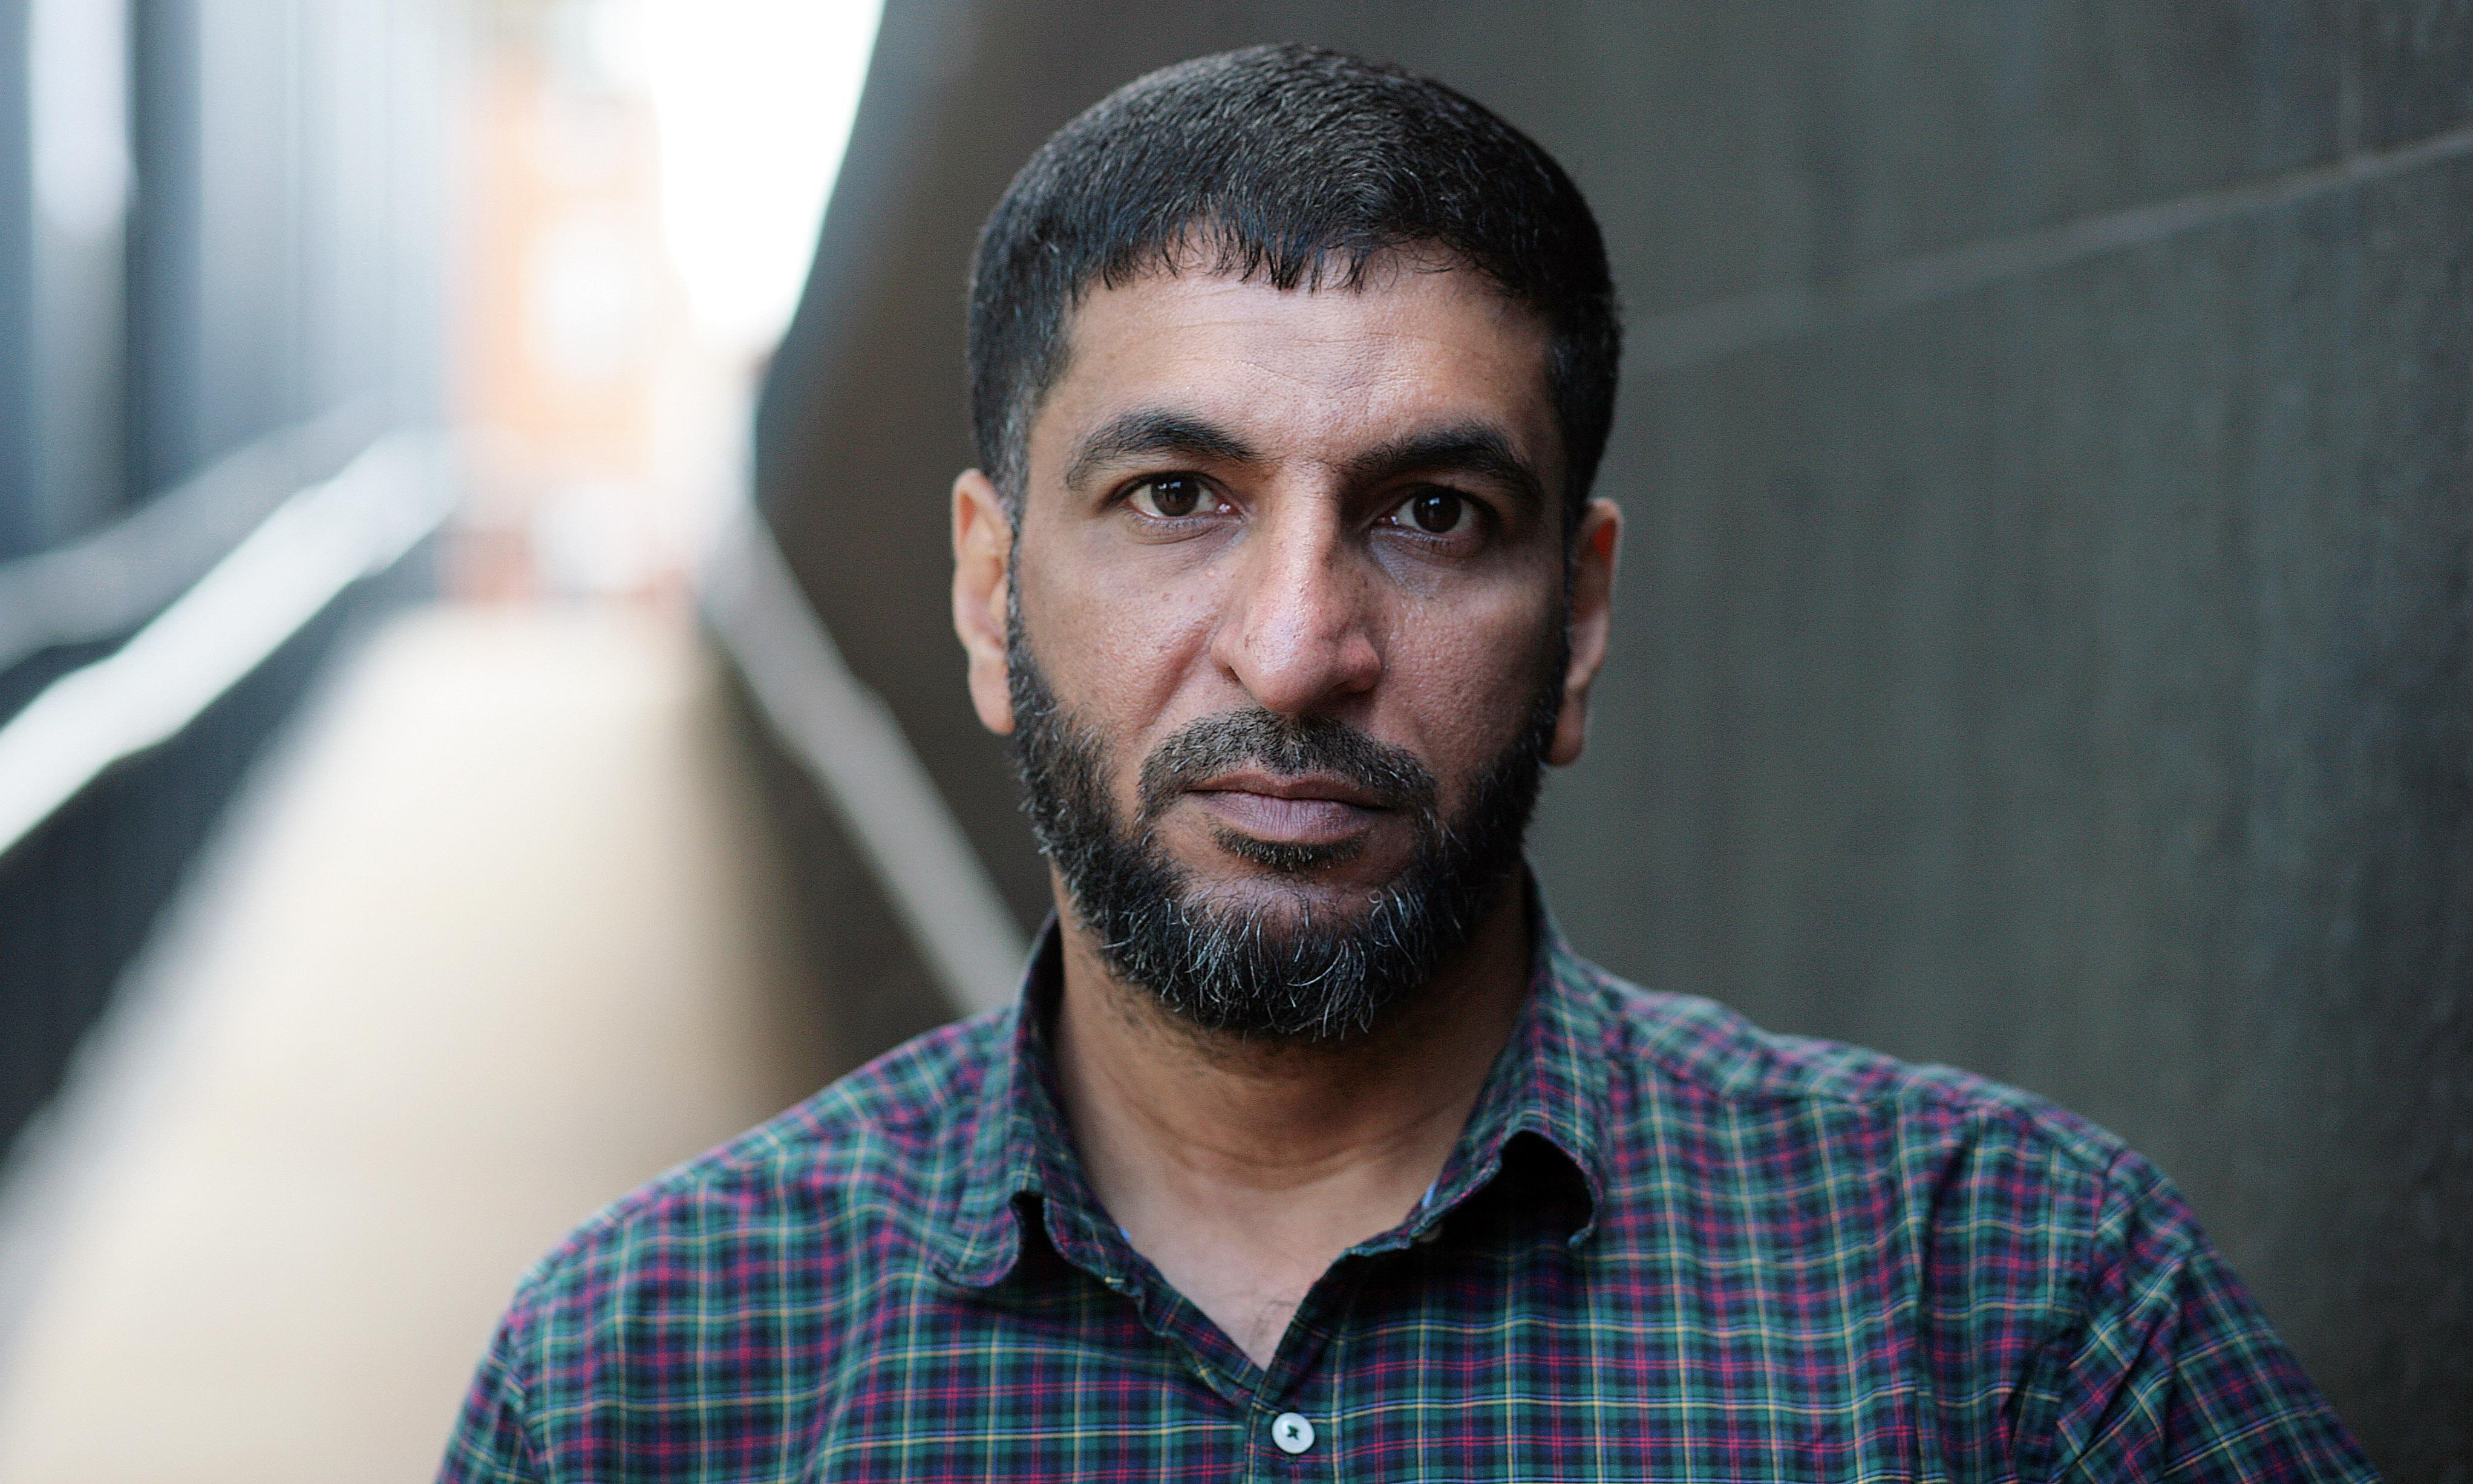 Bahraini dissident says he was victim of London murder attempt